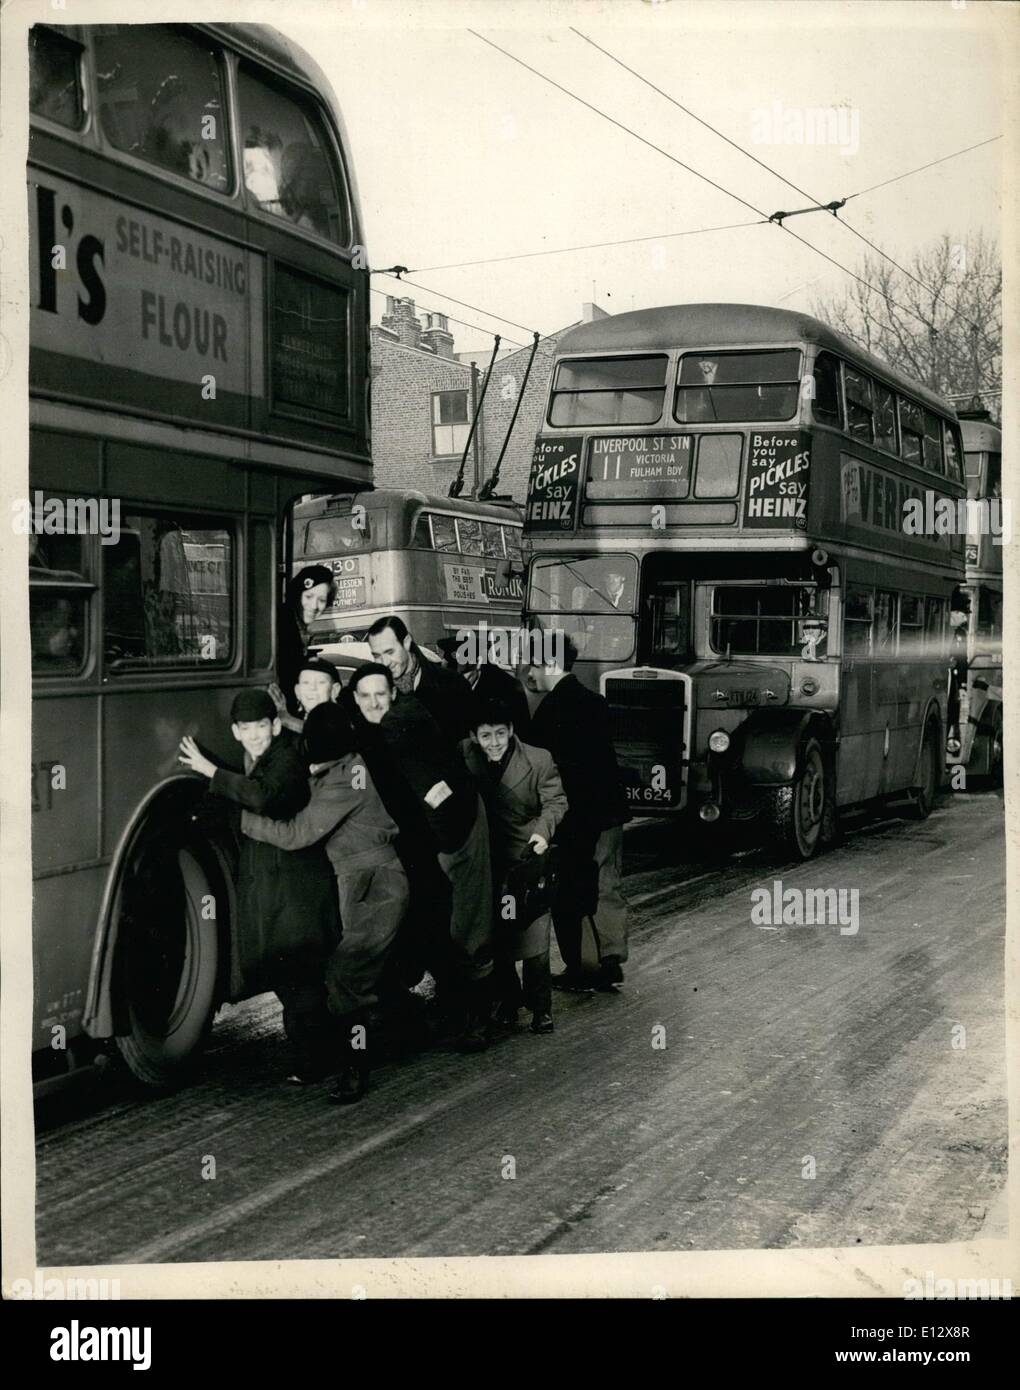 Feb. 25, 2012 - Ice-bound roads dislocate traffic – One of the worst traffic hold-ups in the history of London Transport - Stock Image